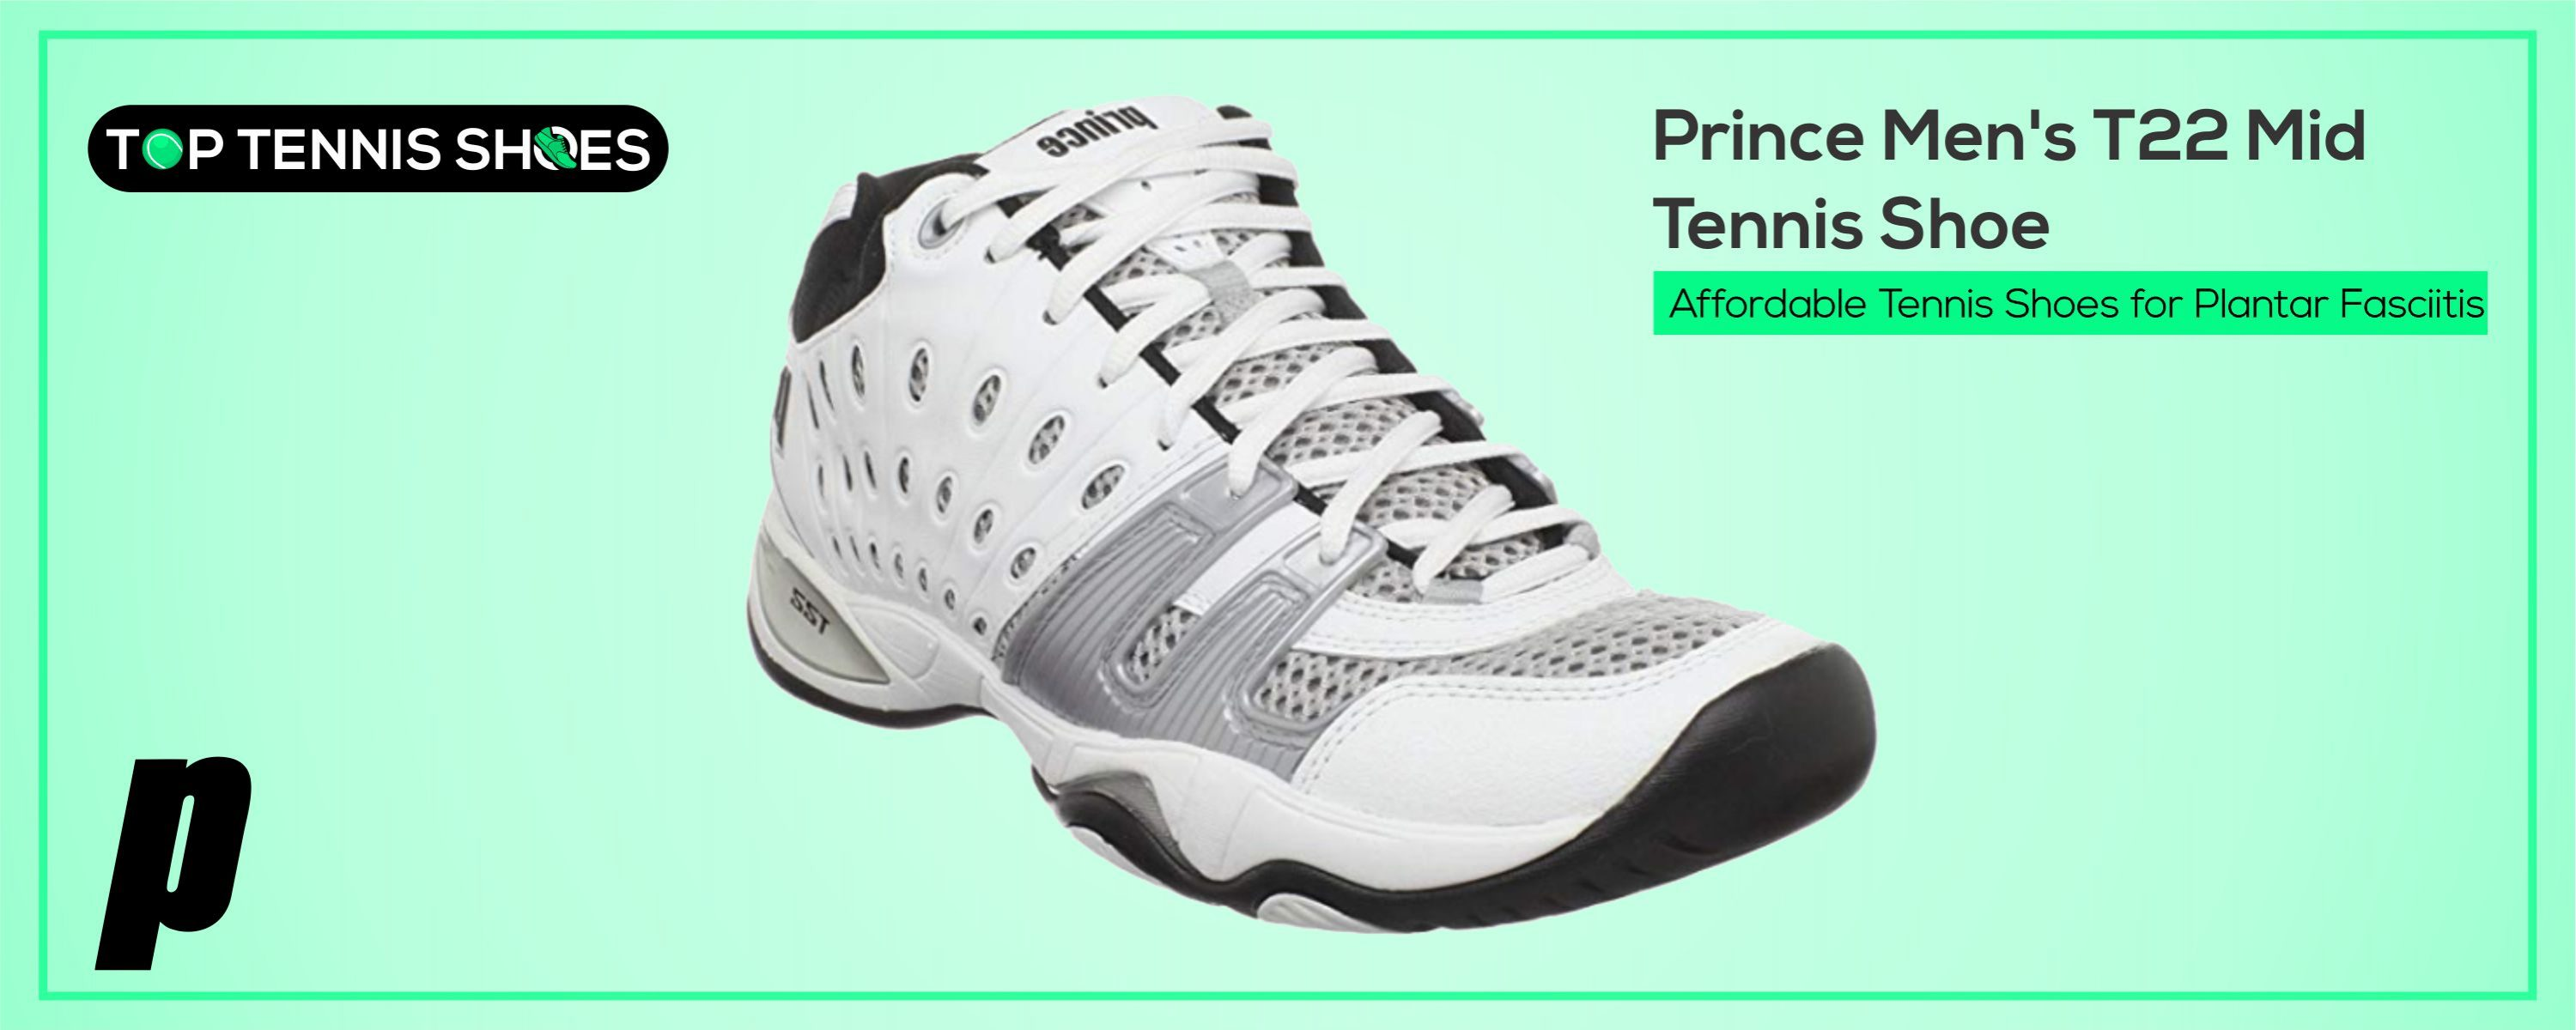 Affordable Tennis Shoes for Plantar Fasciitis